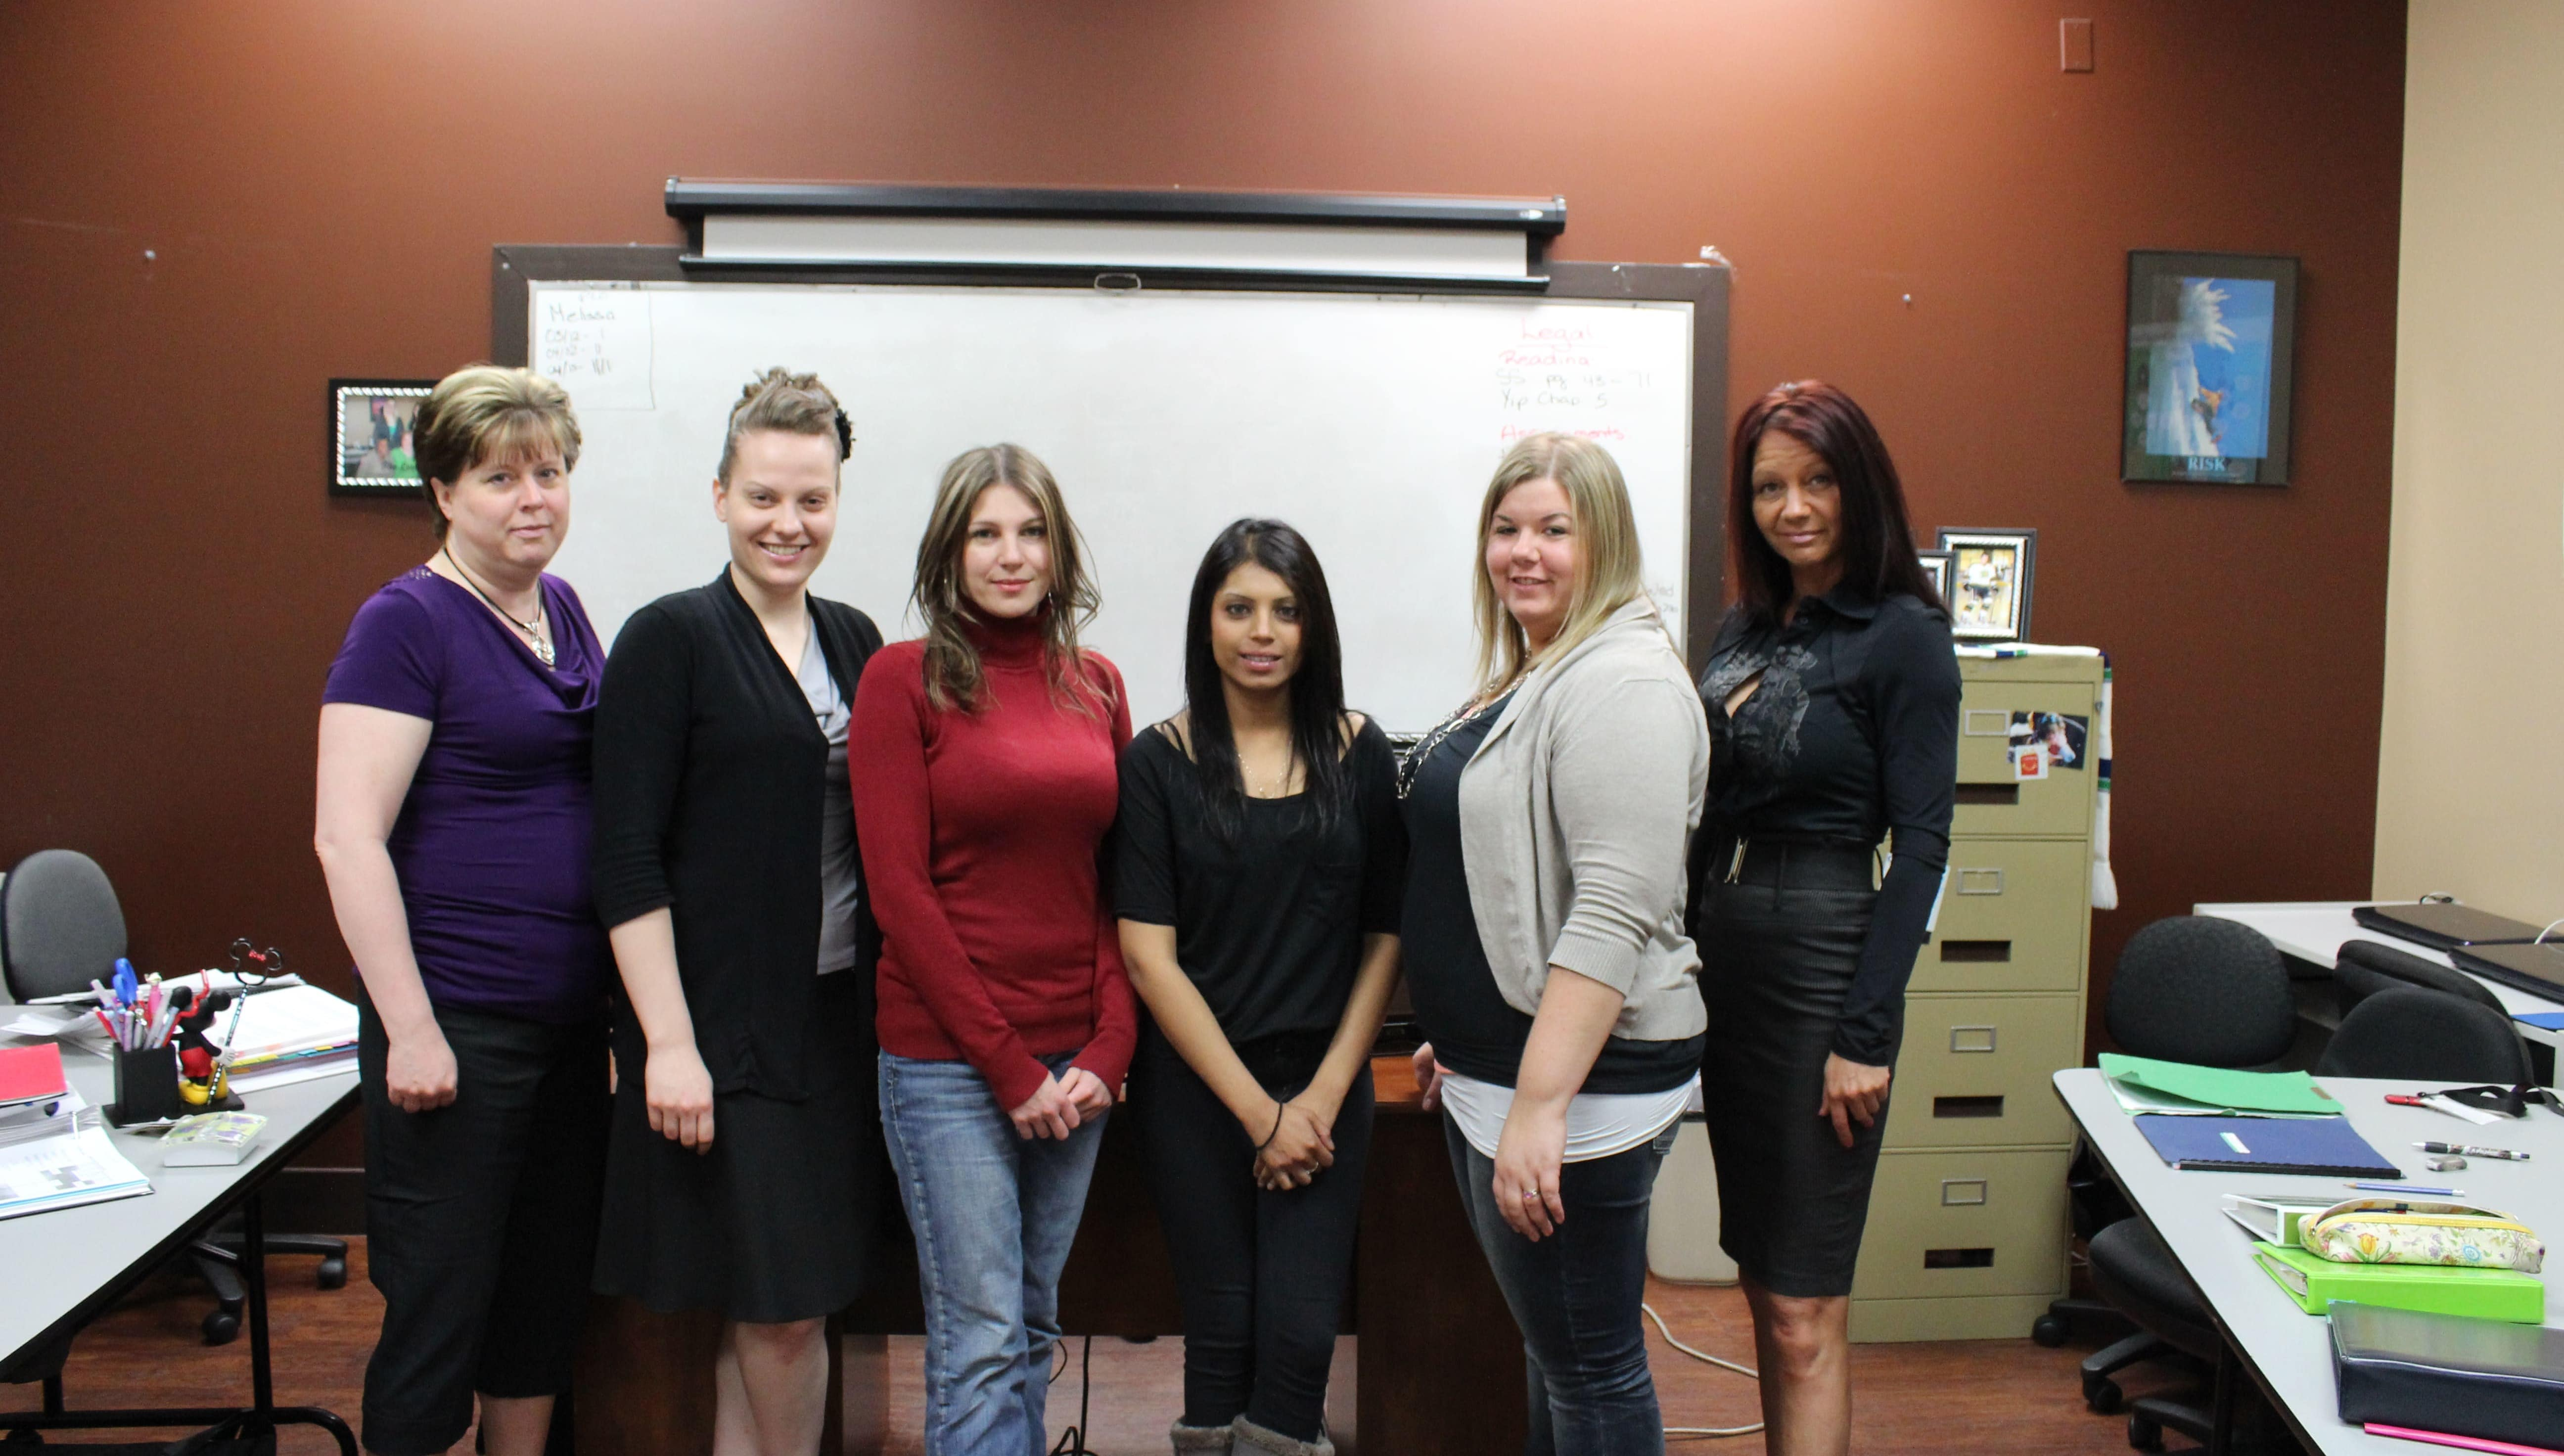 group of sprott shaw students standing together